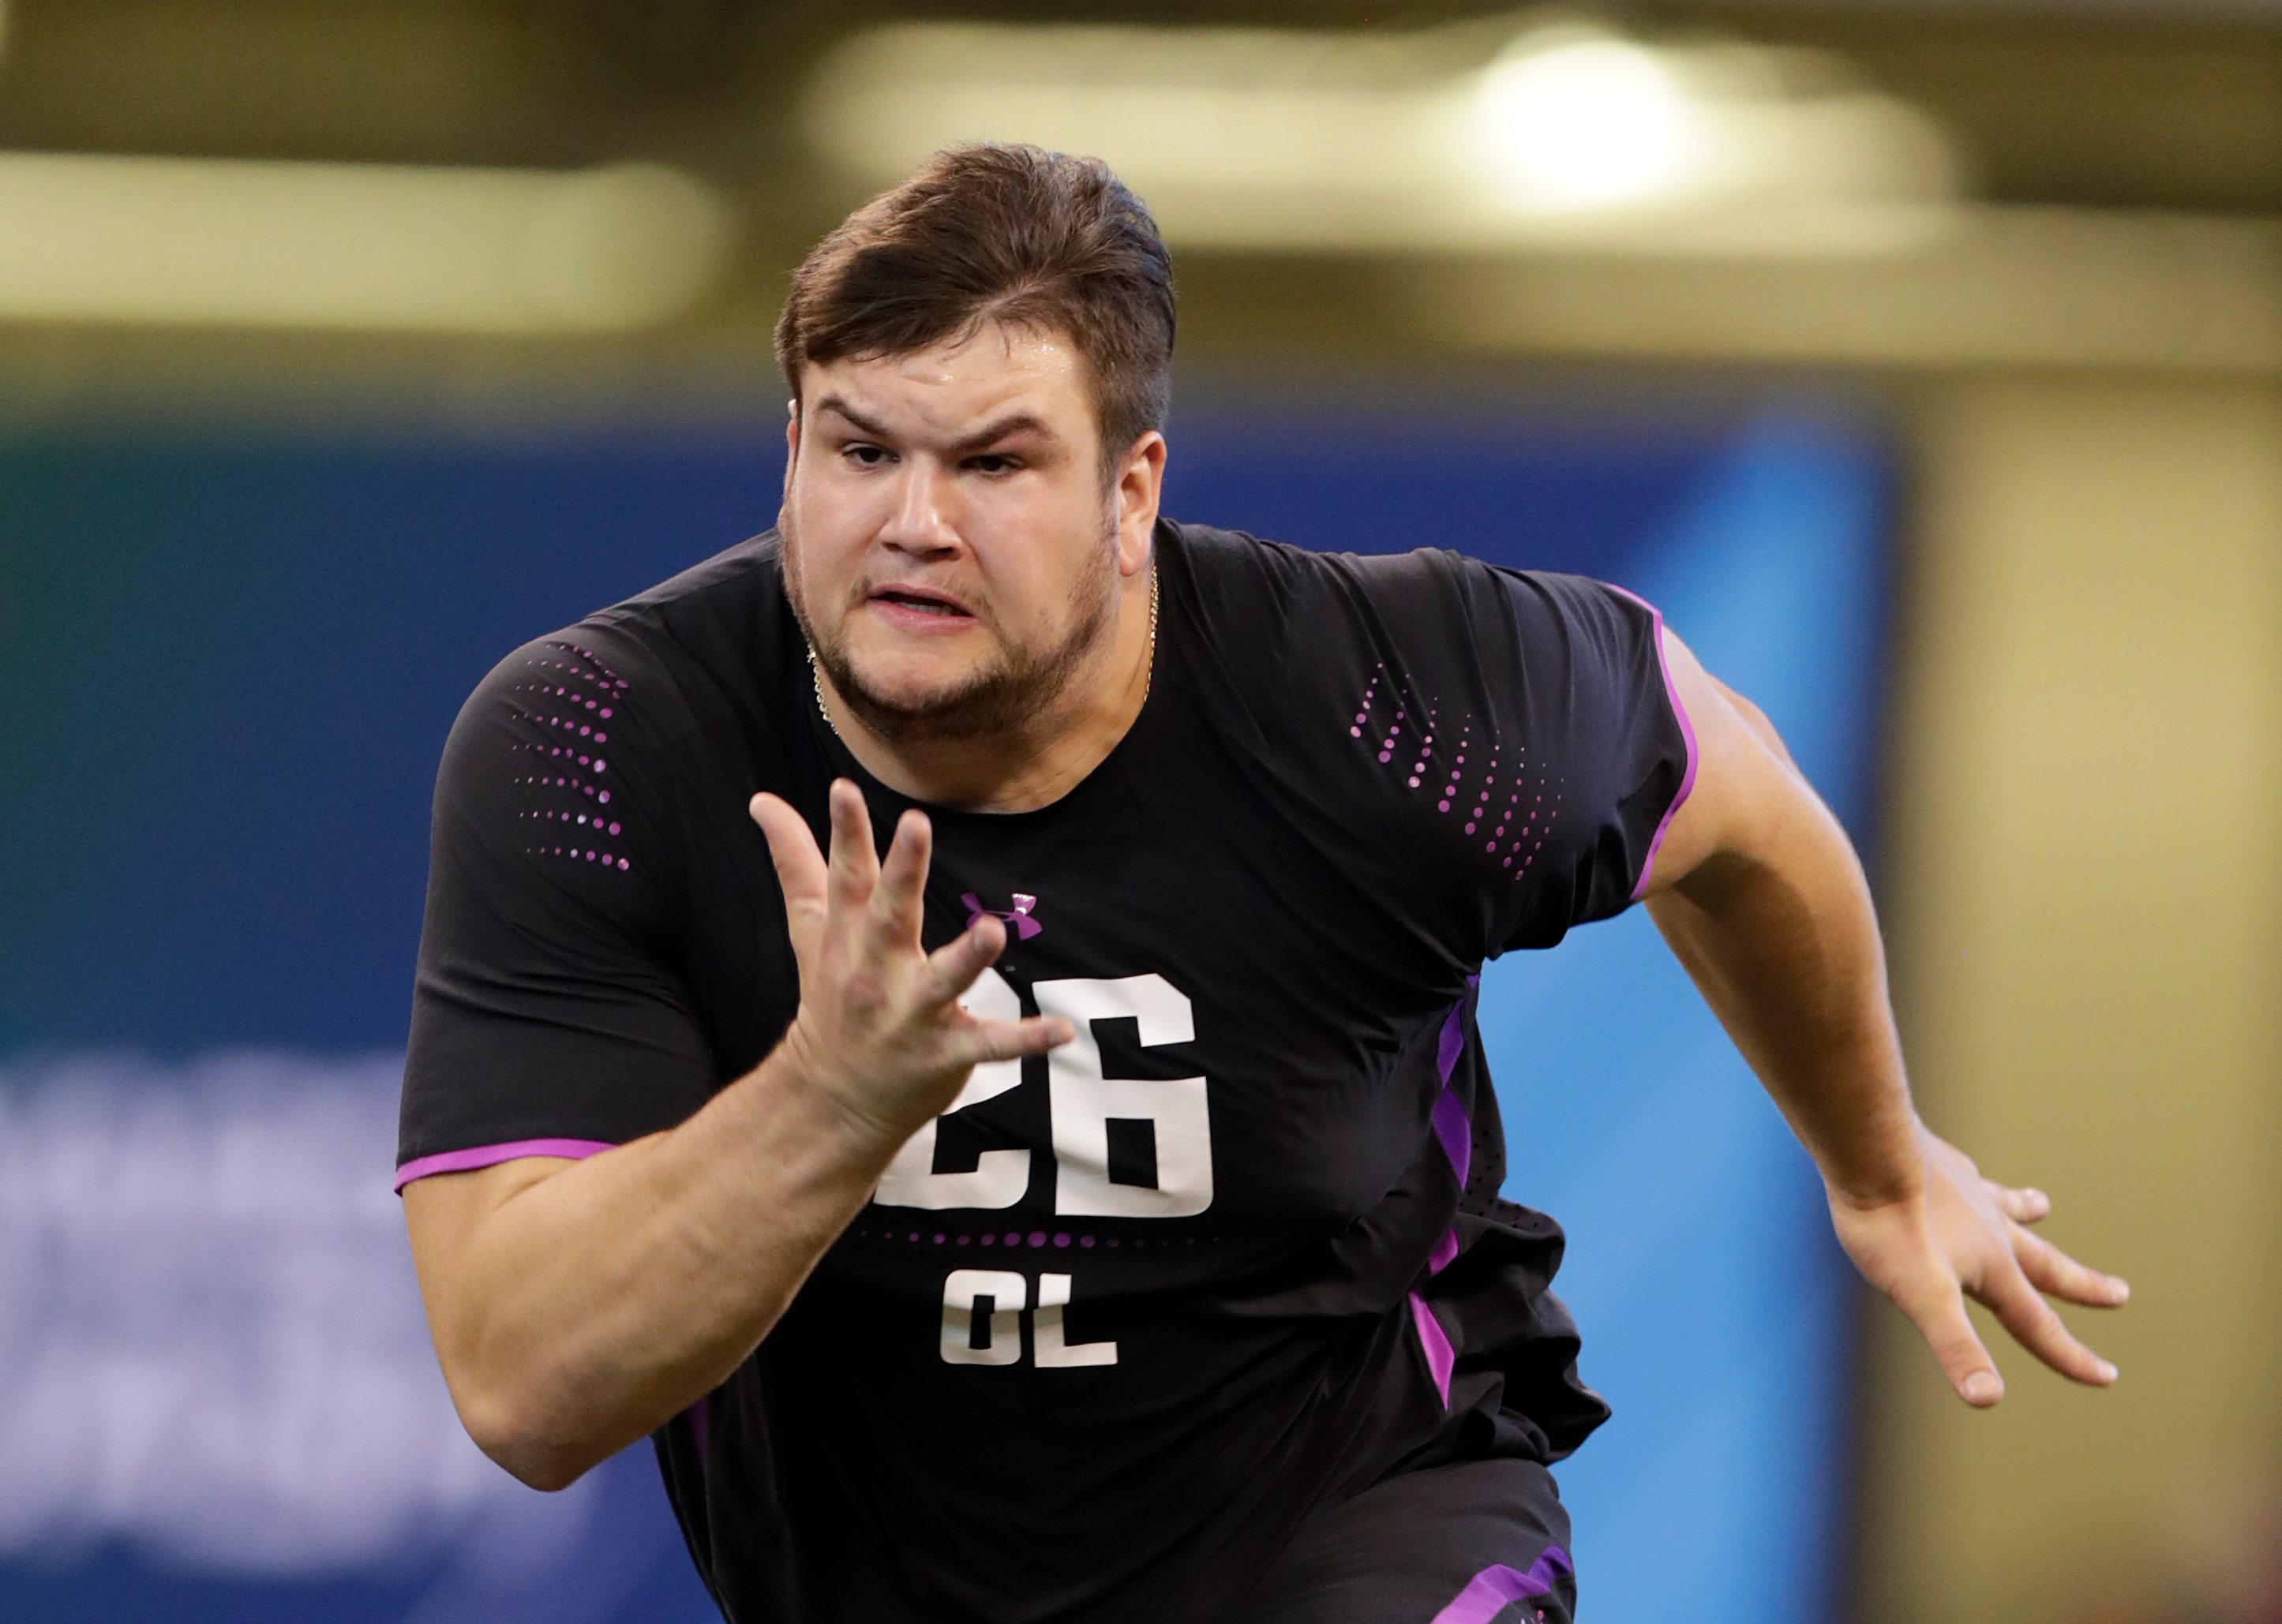 Notre Dame guard Quenton Nelson running a drill at the NFL combine.